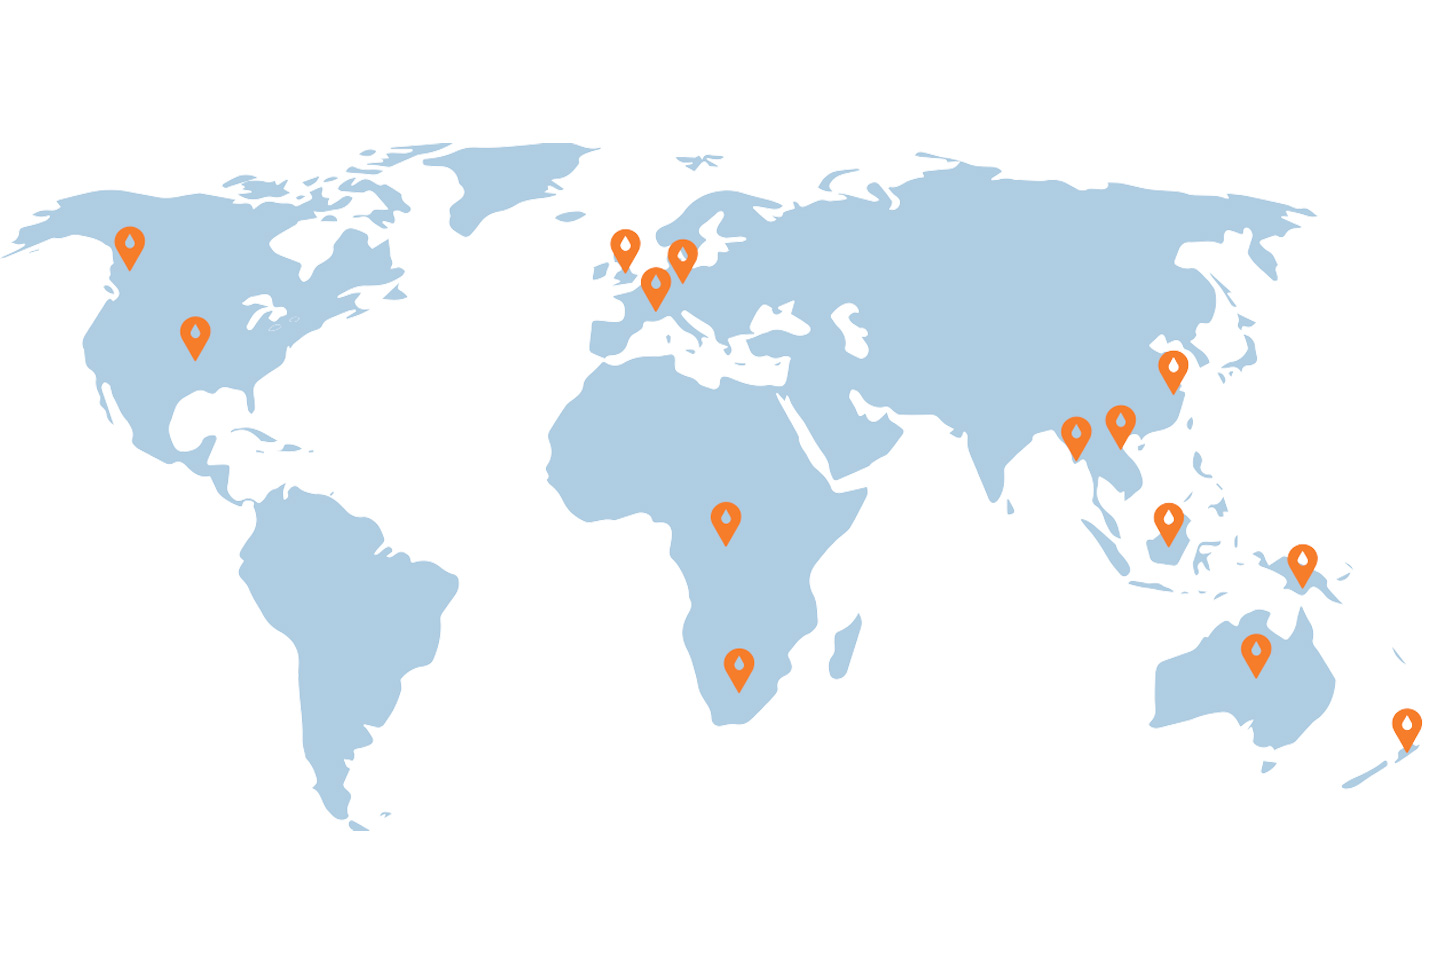 World map showing locations of IMPC attendees